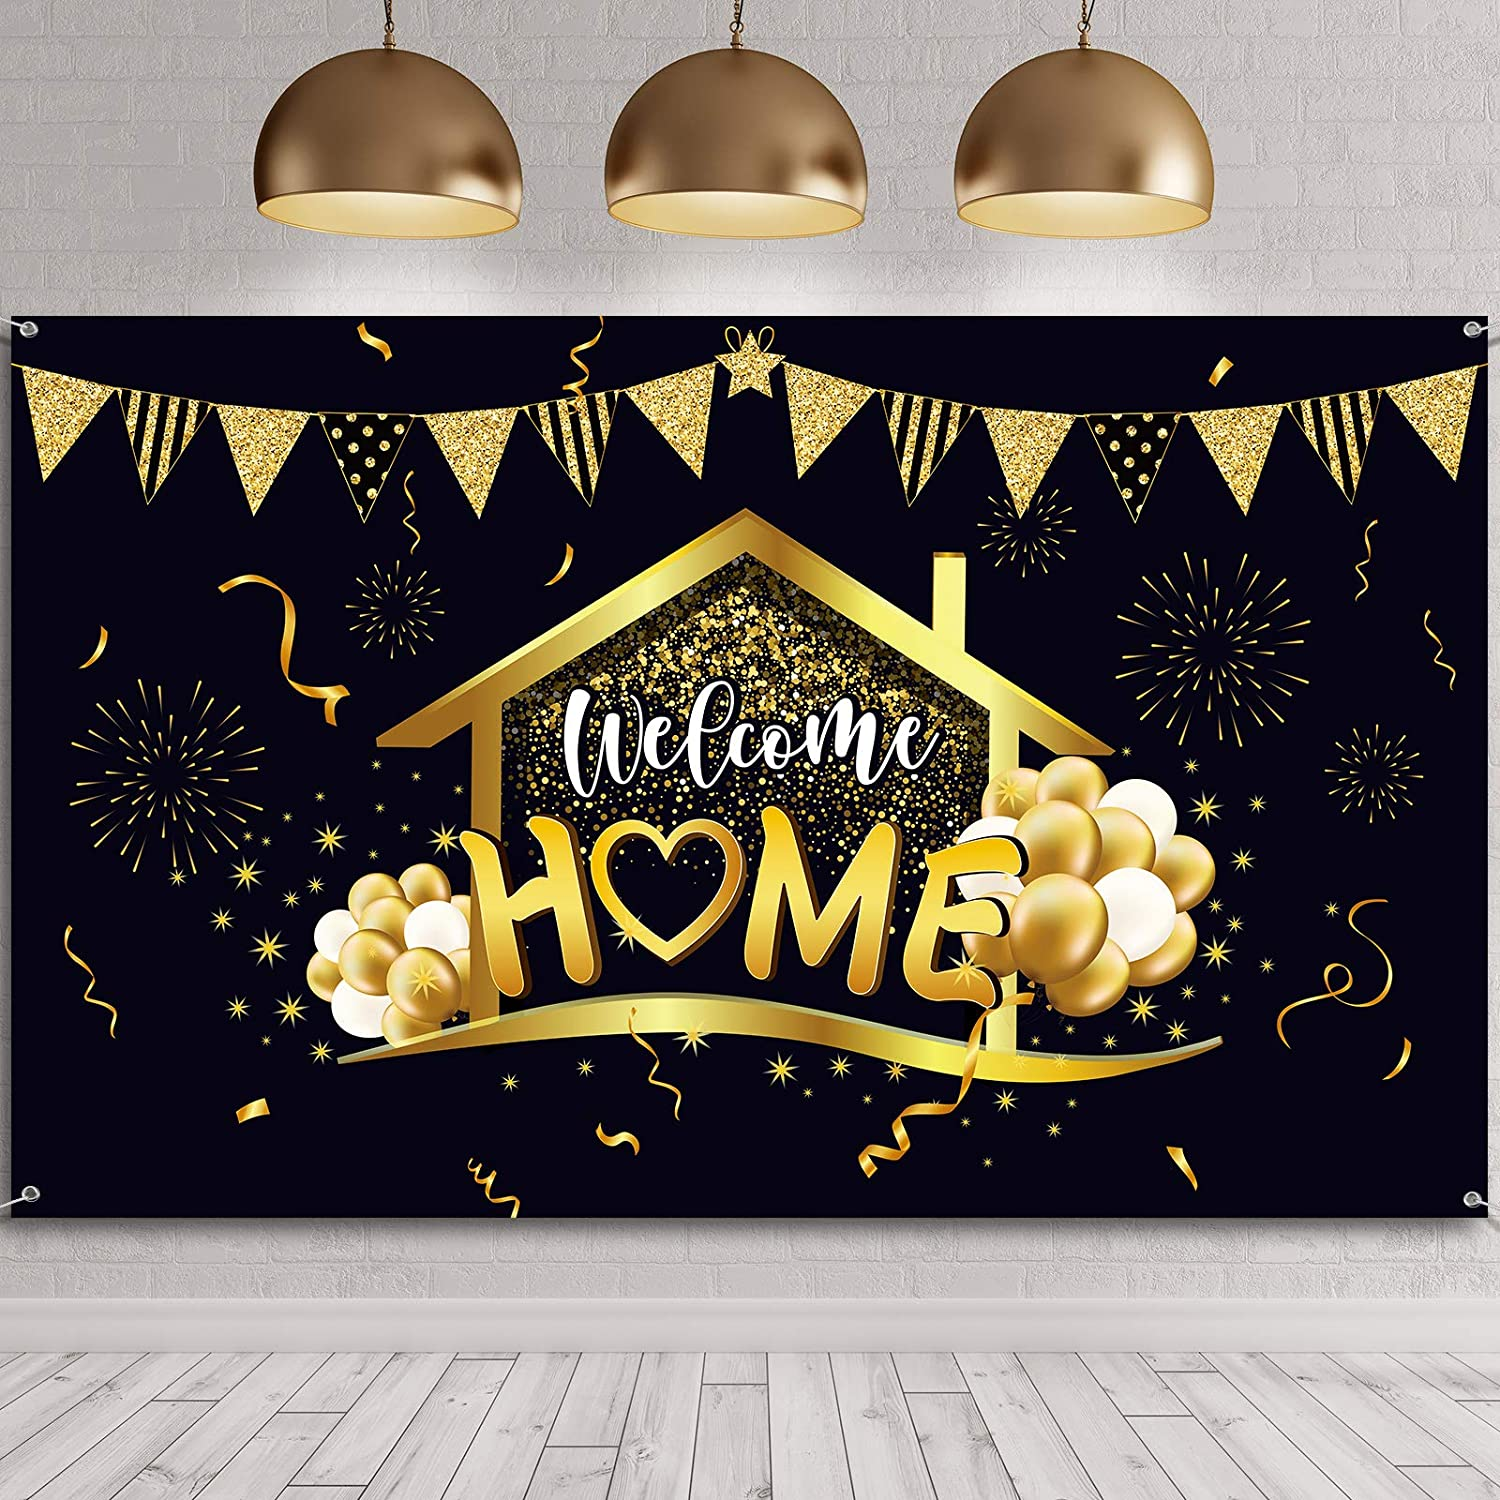 Welcome Home Party Decorations Supplies Homecoming Party Backdrop Welcome Back Home Banner Return Home Photography Background for Family Party Home Decoration Photo Booth Black Gold, 70.8 x 43.3 inch